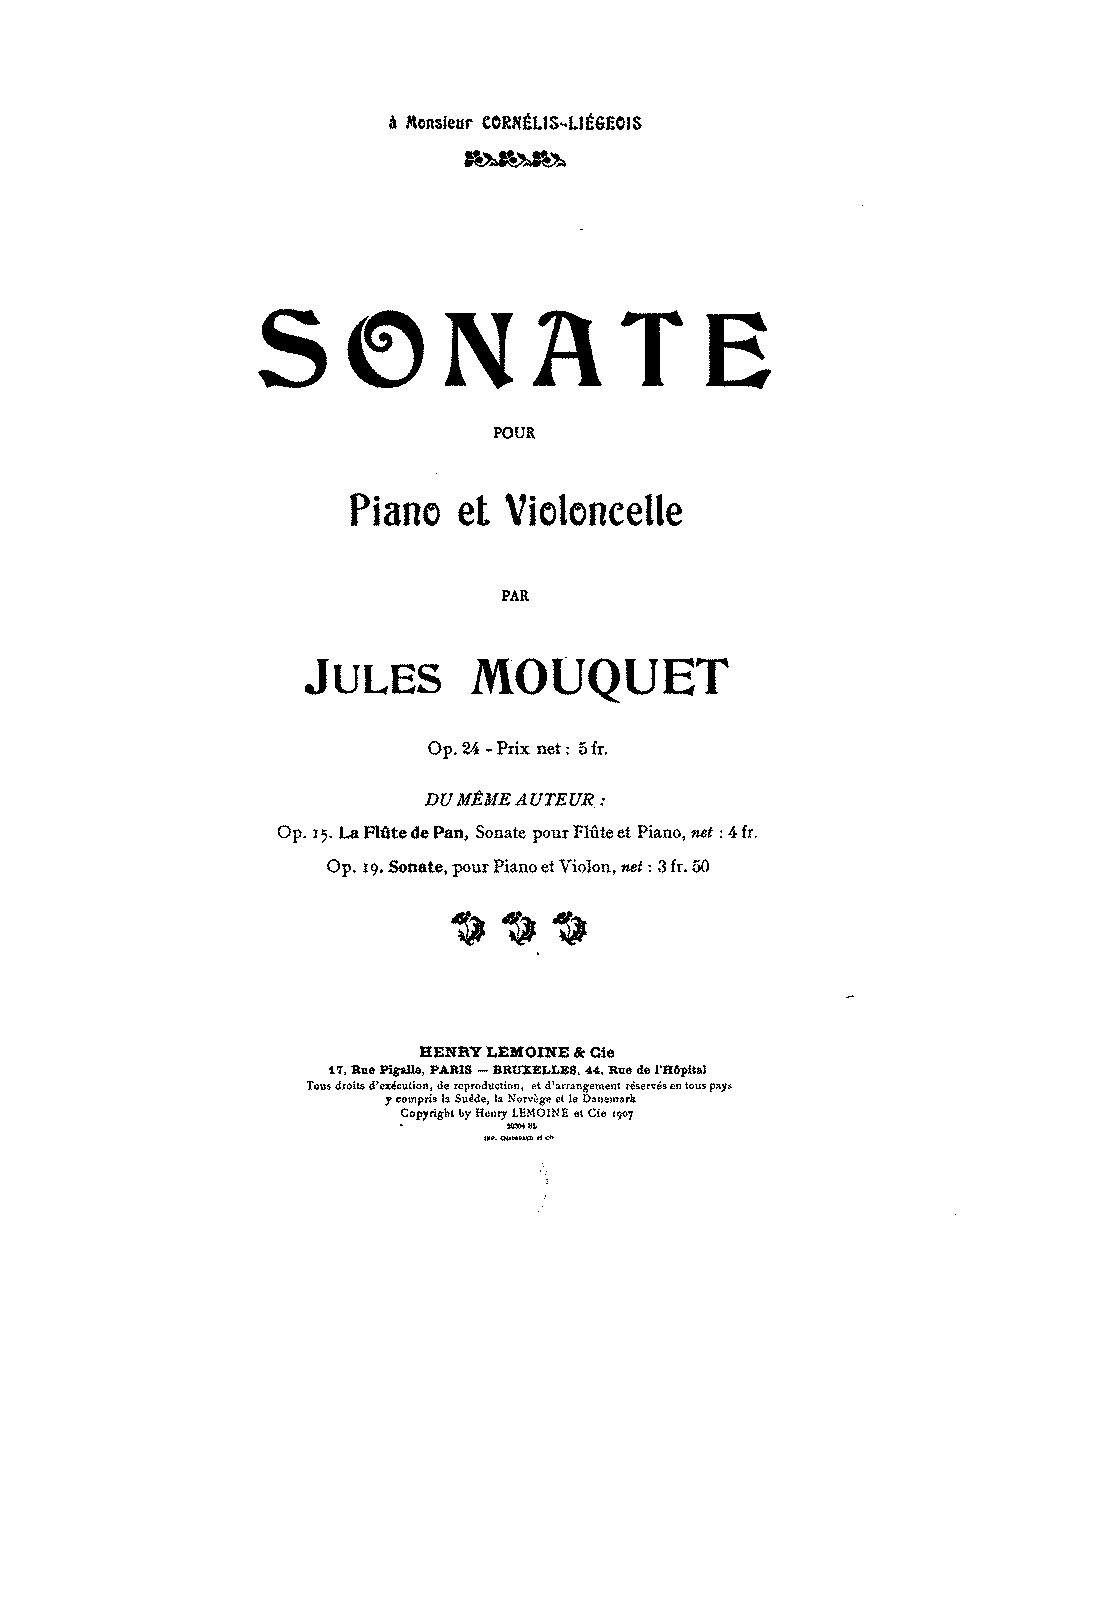 PMLP136027-Mouquet - Sonata for Cello and Piano Op24 score.pdf